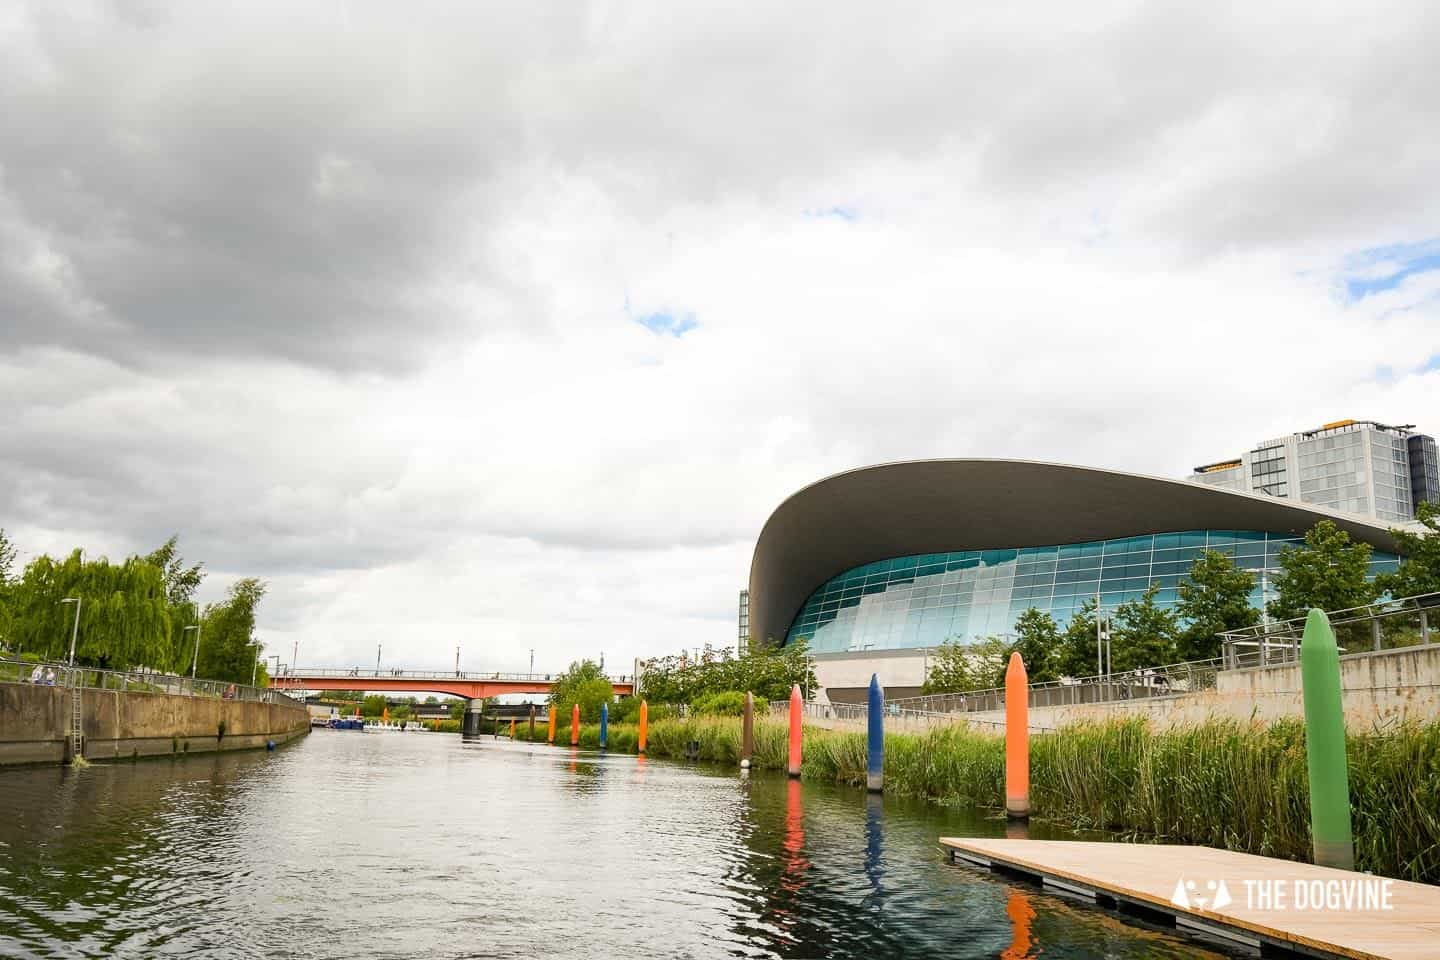 Queen Elizabeth Olympic Park Dog-friendly Boat Tours London - Lee and Stort 11